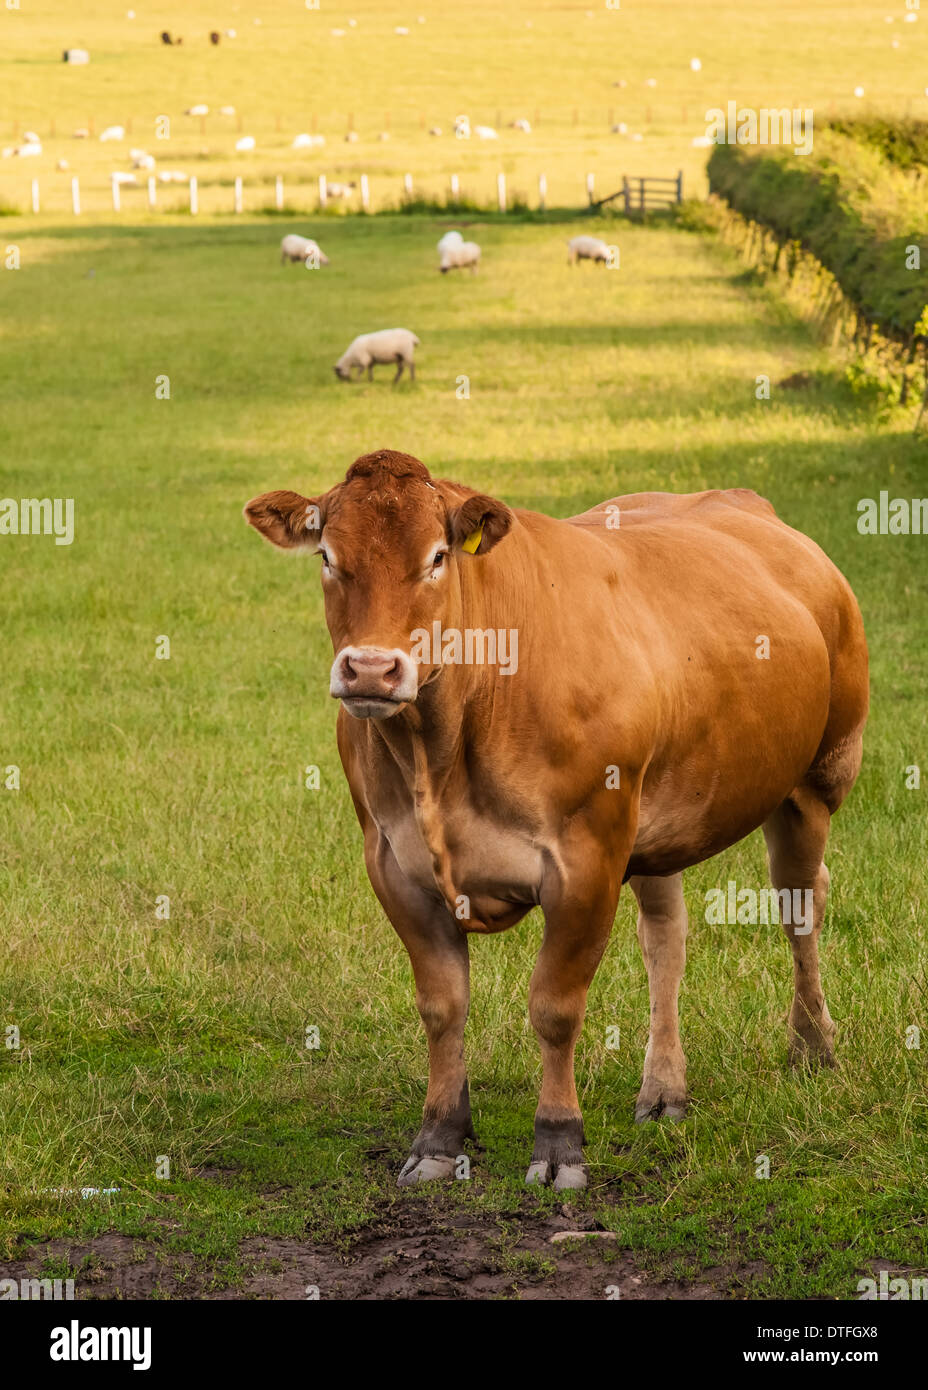 Limousin Cattle / Cow / Bull - Stock Image